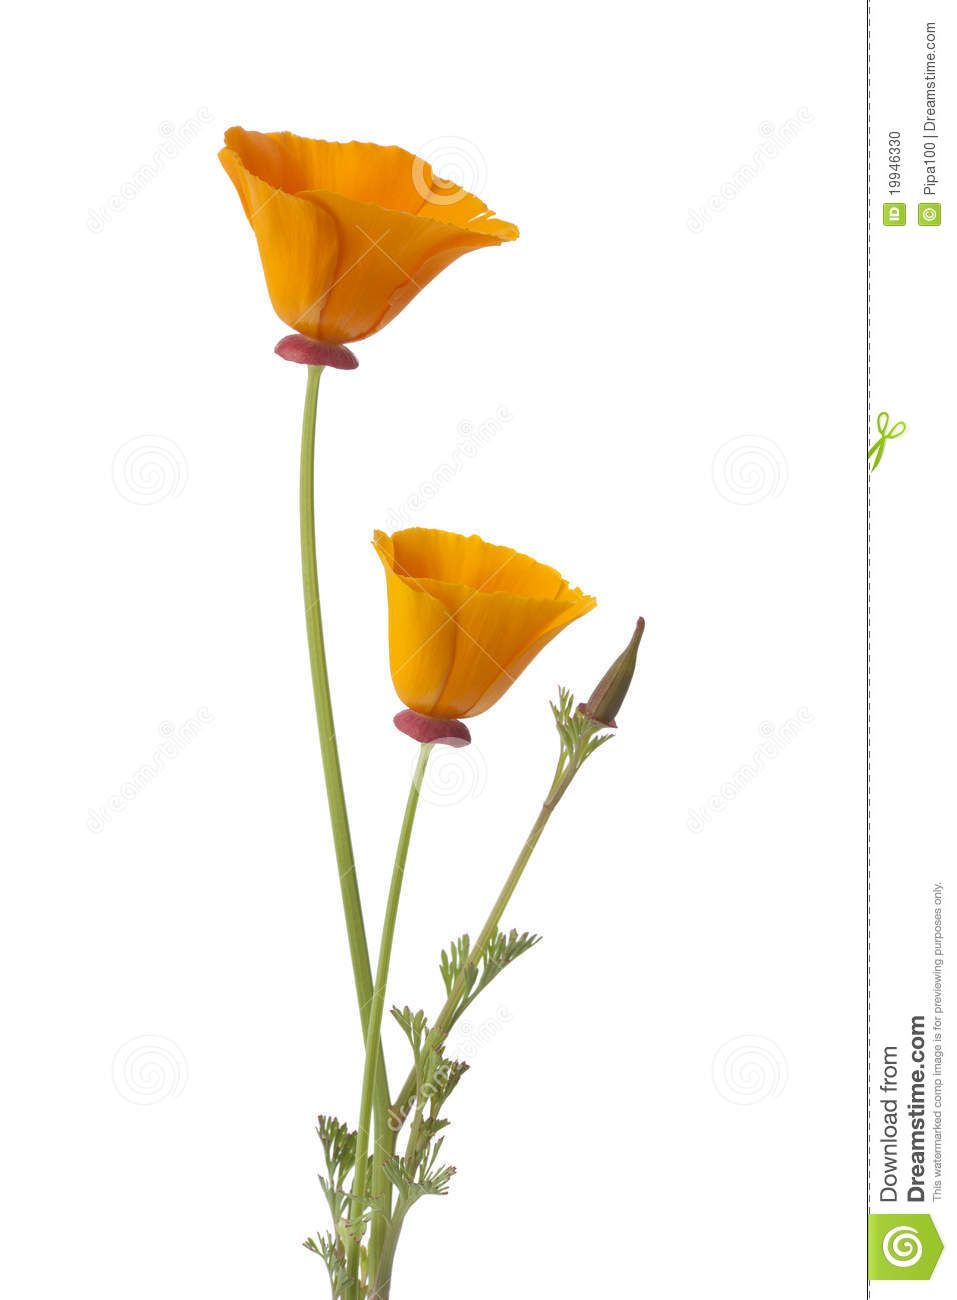 california poppy clipart google search [ 957 x 1300 Pixel ]